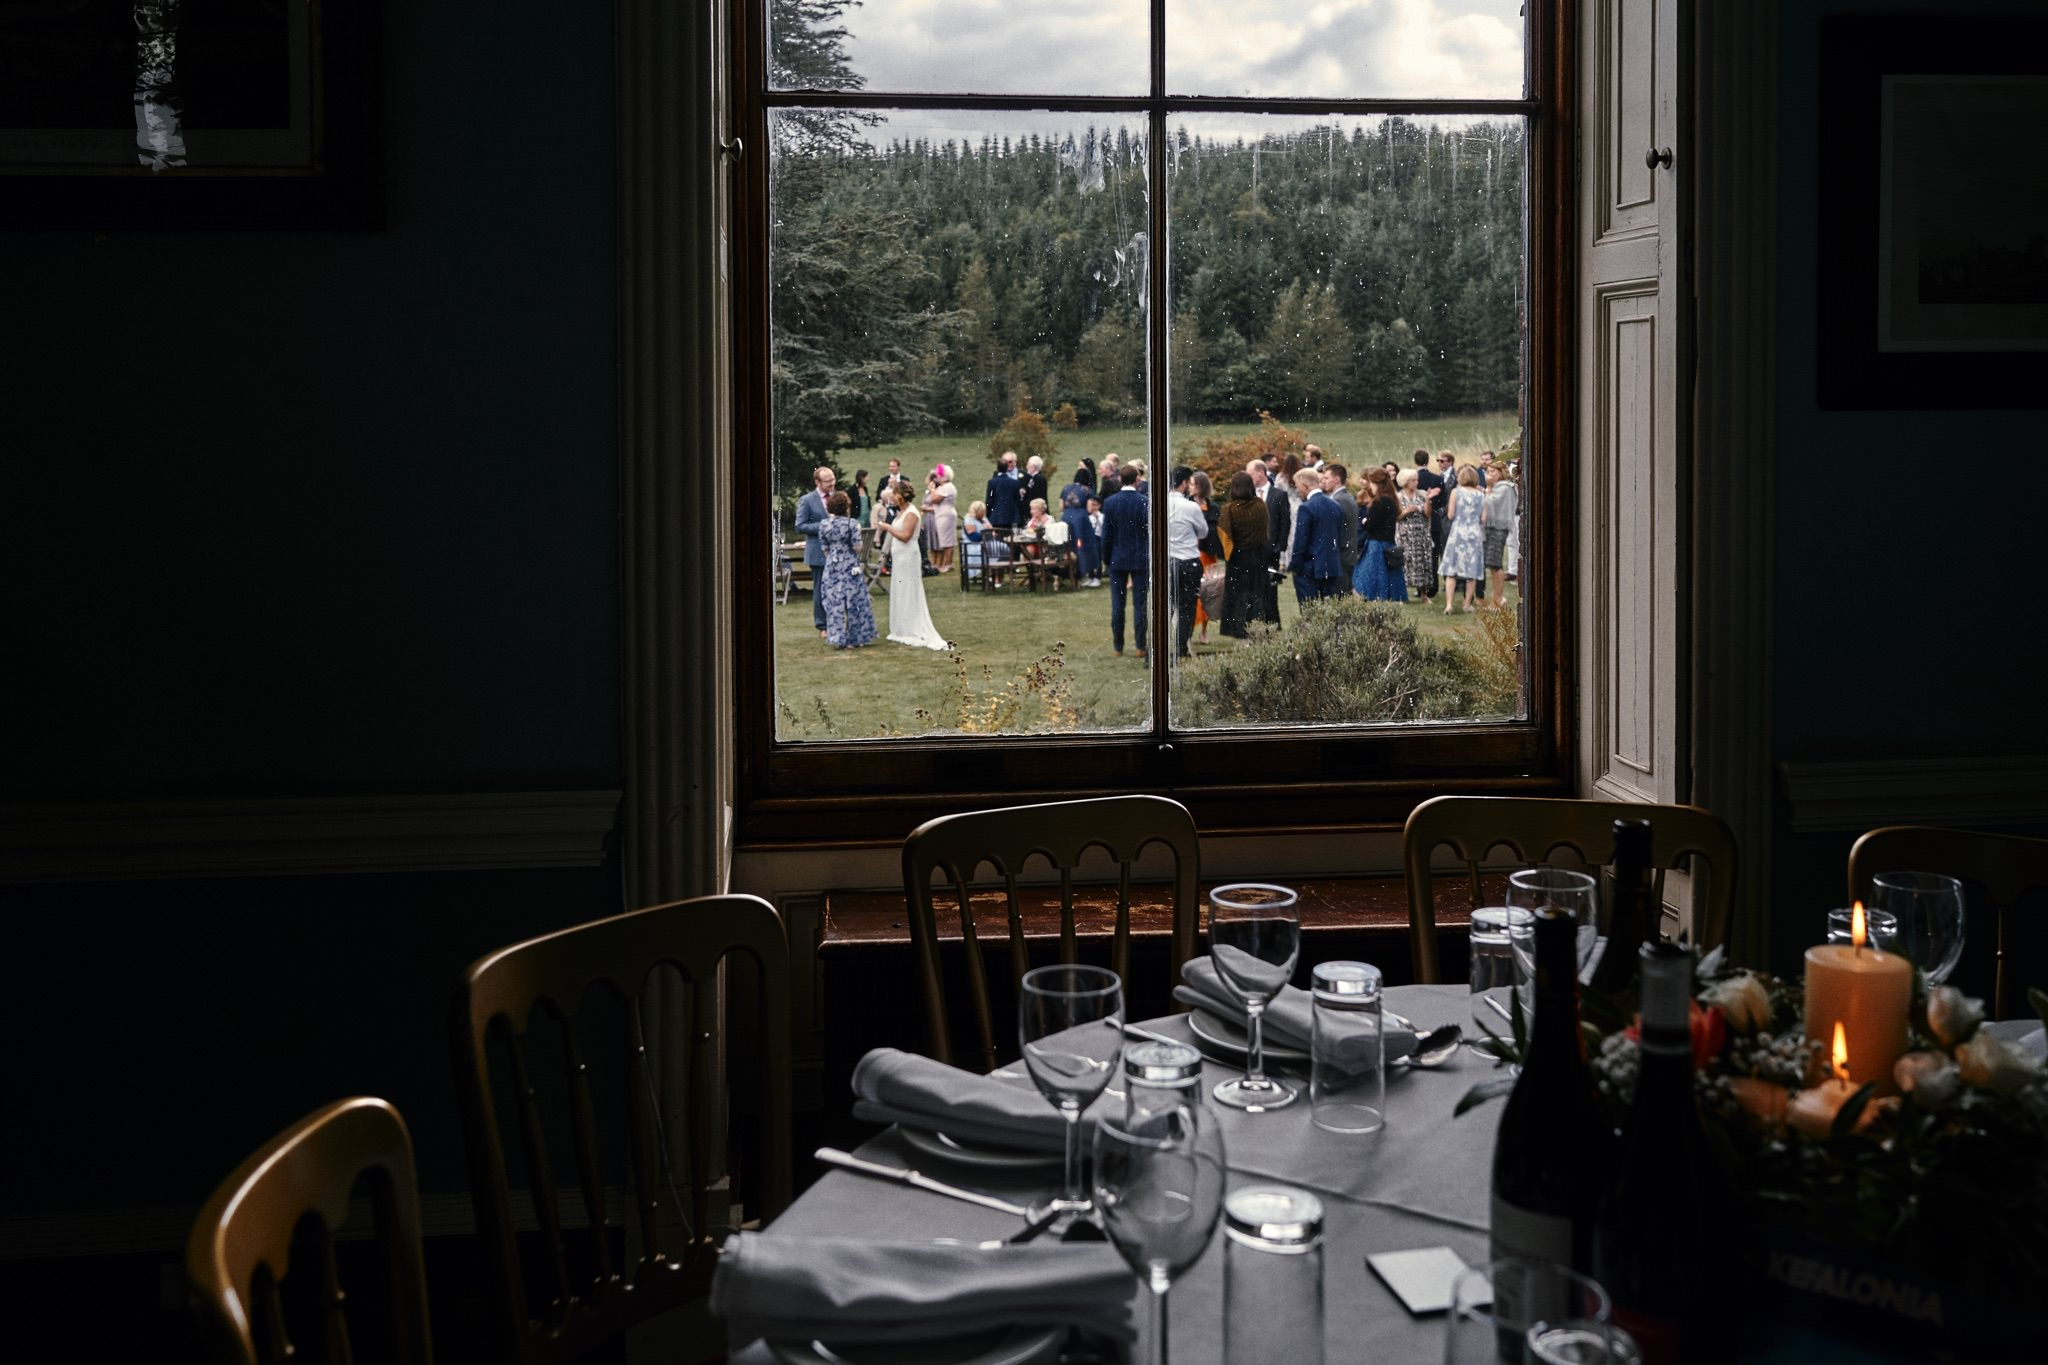 Window overlooking the wedding reception in the beautiful gardens at Walcott Hall Hotel, Shropshire.